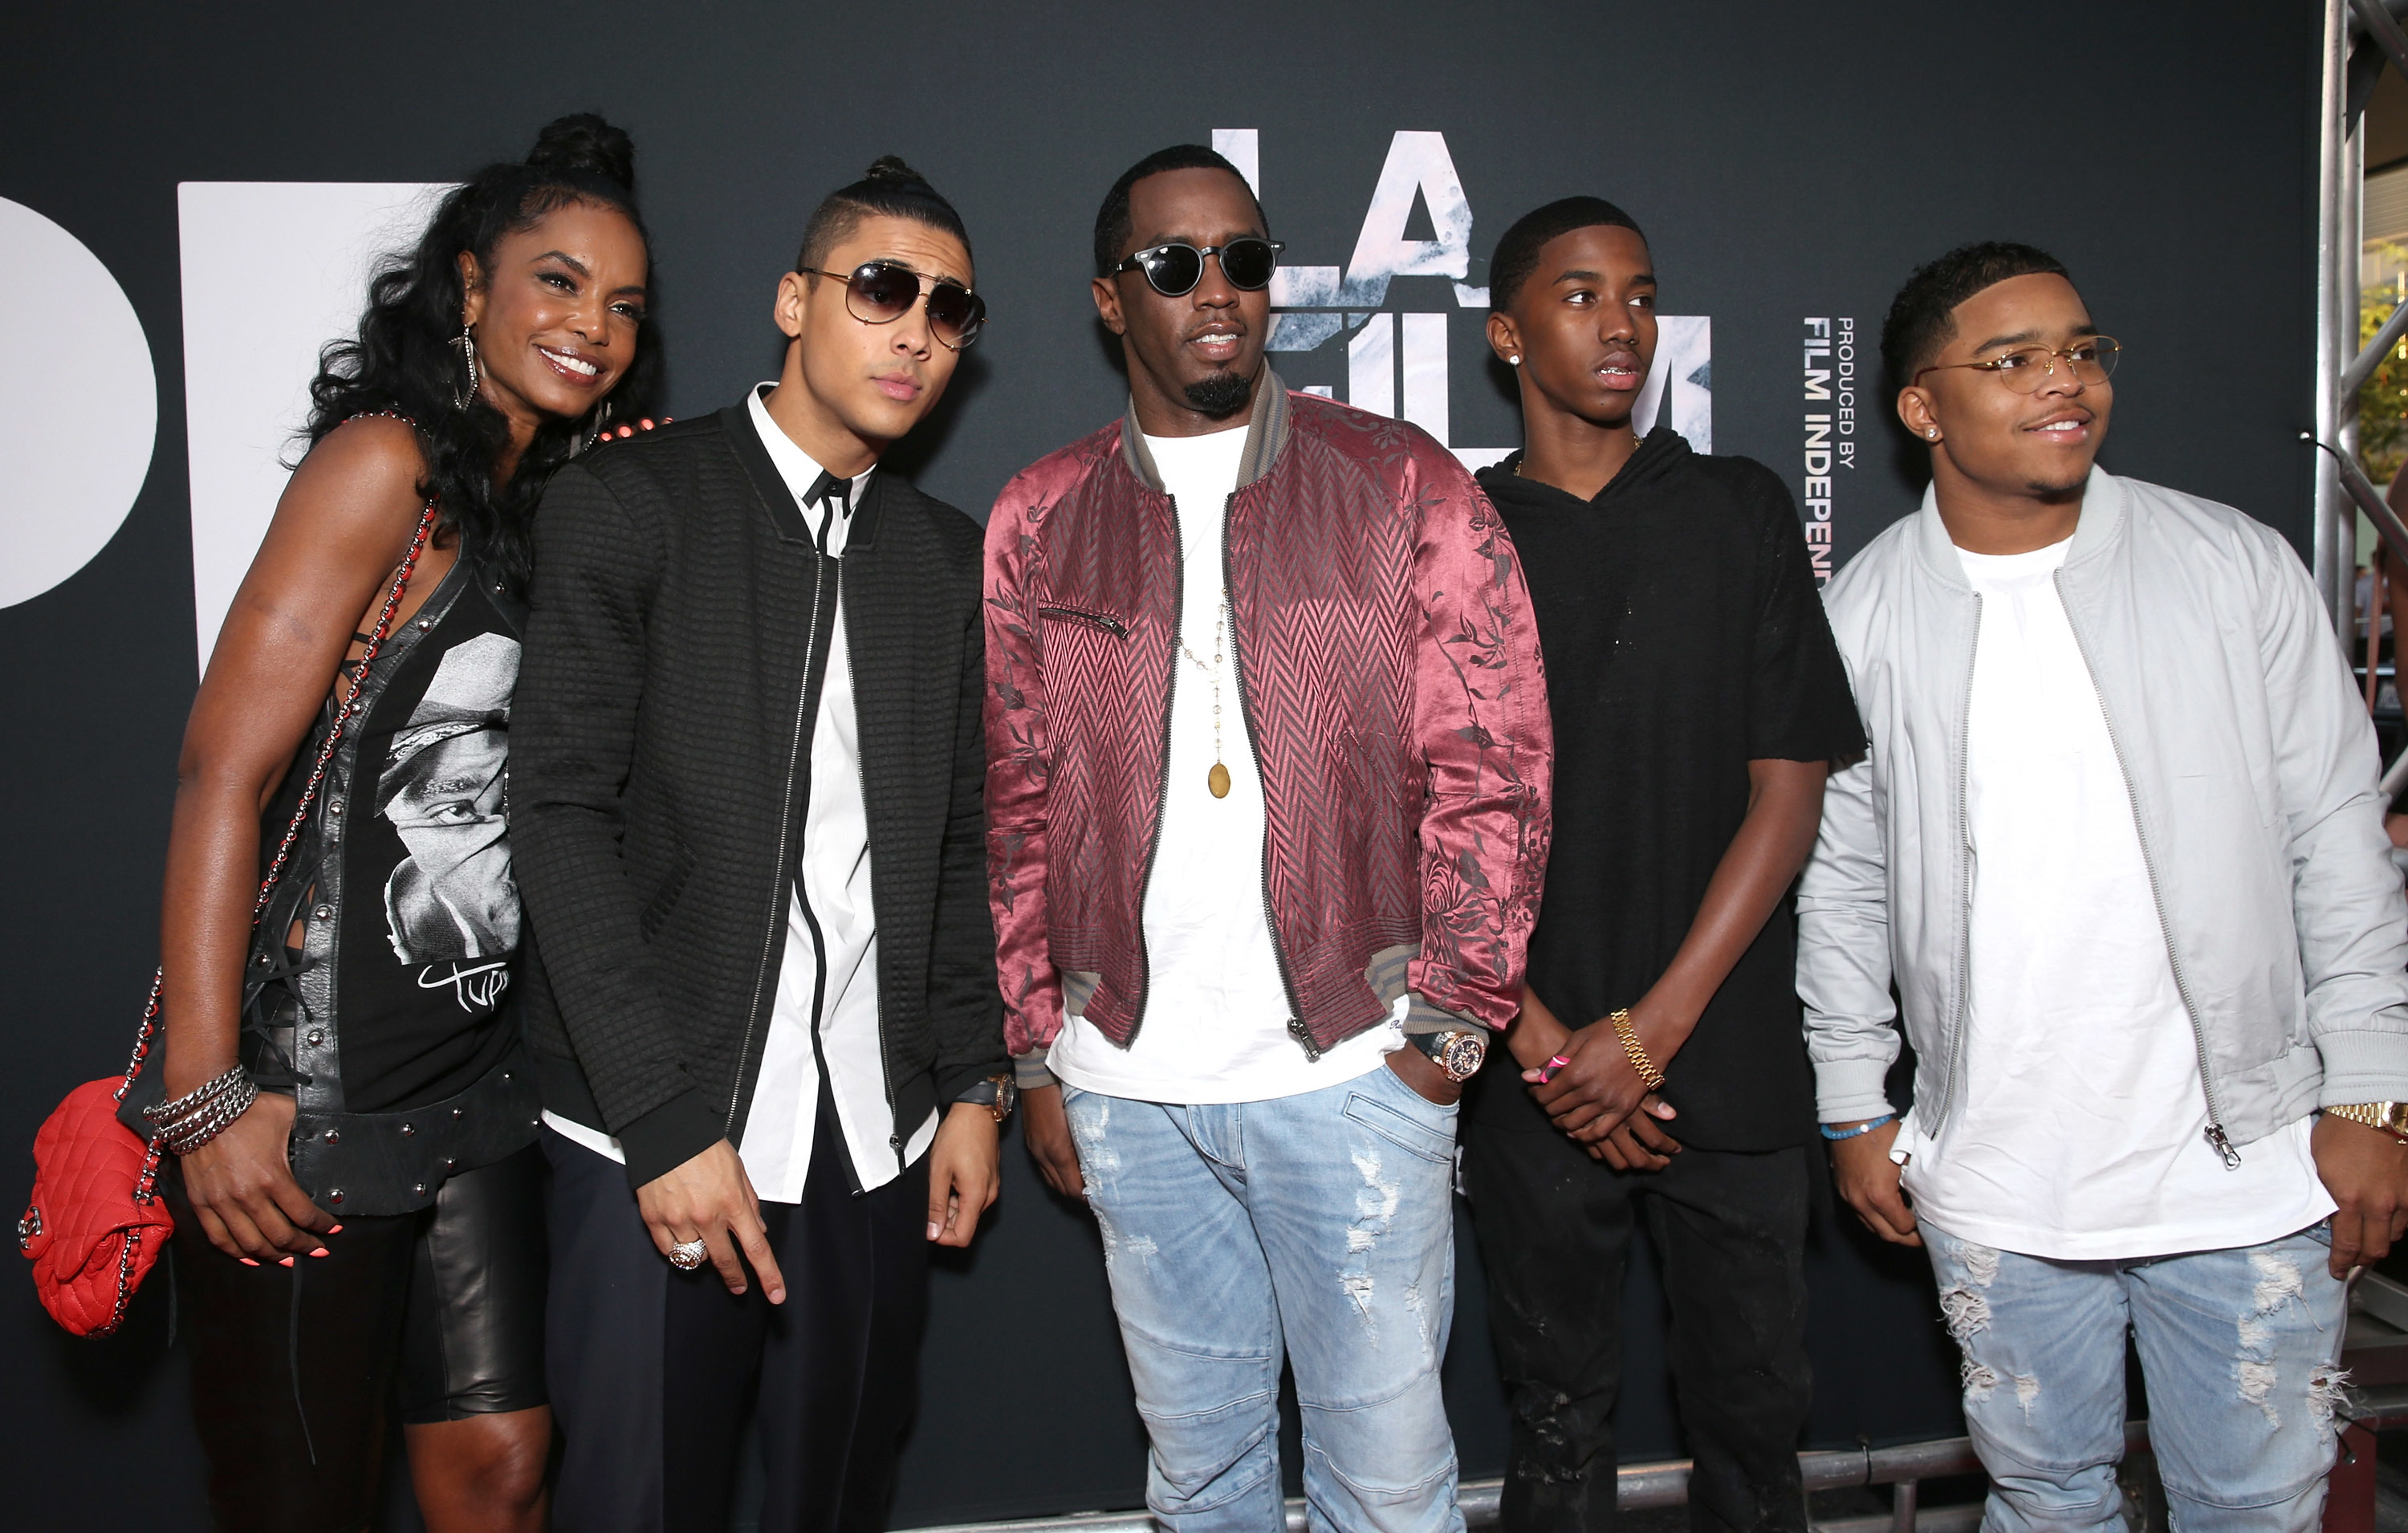 """Kim Porter, Quincy Brown, Sean Combs, Christian Combs and Justin Combs attend the Los Angeles Film Festival Premiere Of Open Road Films' """"Dope"""" at Regal Cinemas L.A. Live in Los Angeles on June 8, 2015.  (Photo by Todd Williamson/Getty Images)"""